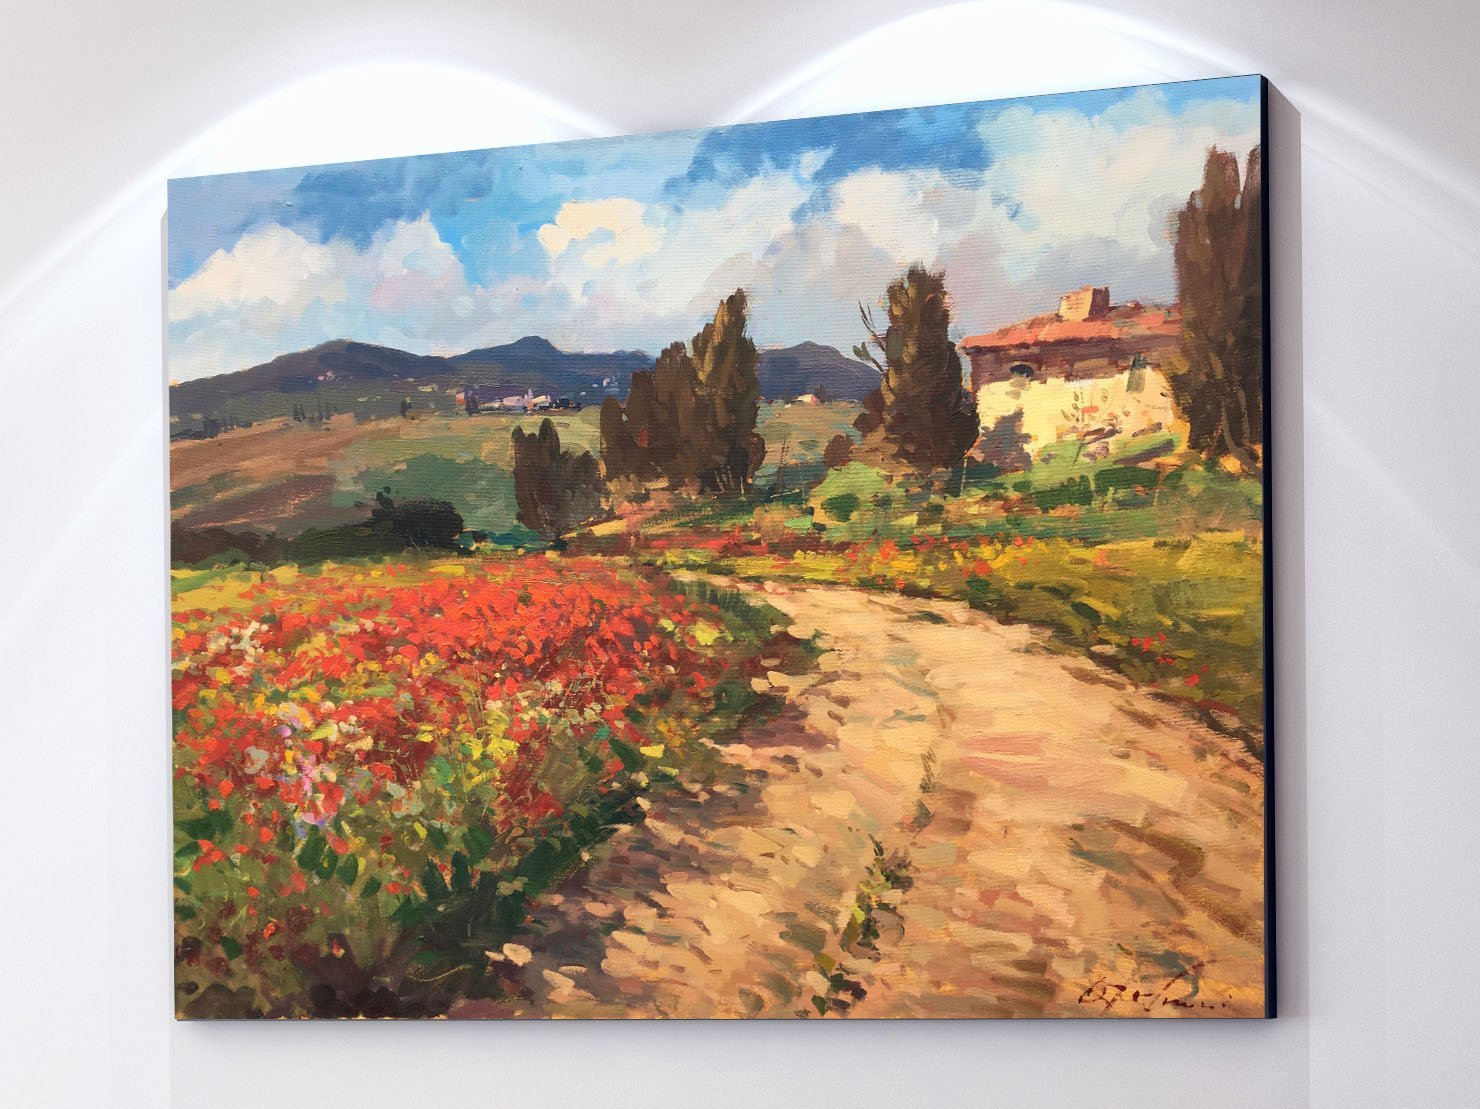 Tuscan Chianti Country Wall Art Tuscany Italy Artwork Landscape Canvas Prints Poppies Trees Cypress House Filed Sunflowers Home Decor Living Room Gifts Women Men Christmas - Painting Agostino Veroni by AGOSTINO VERONI ORIGINAL PAINTINGS AND FINE ART PRINTS